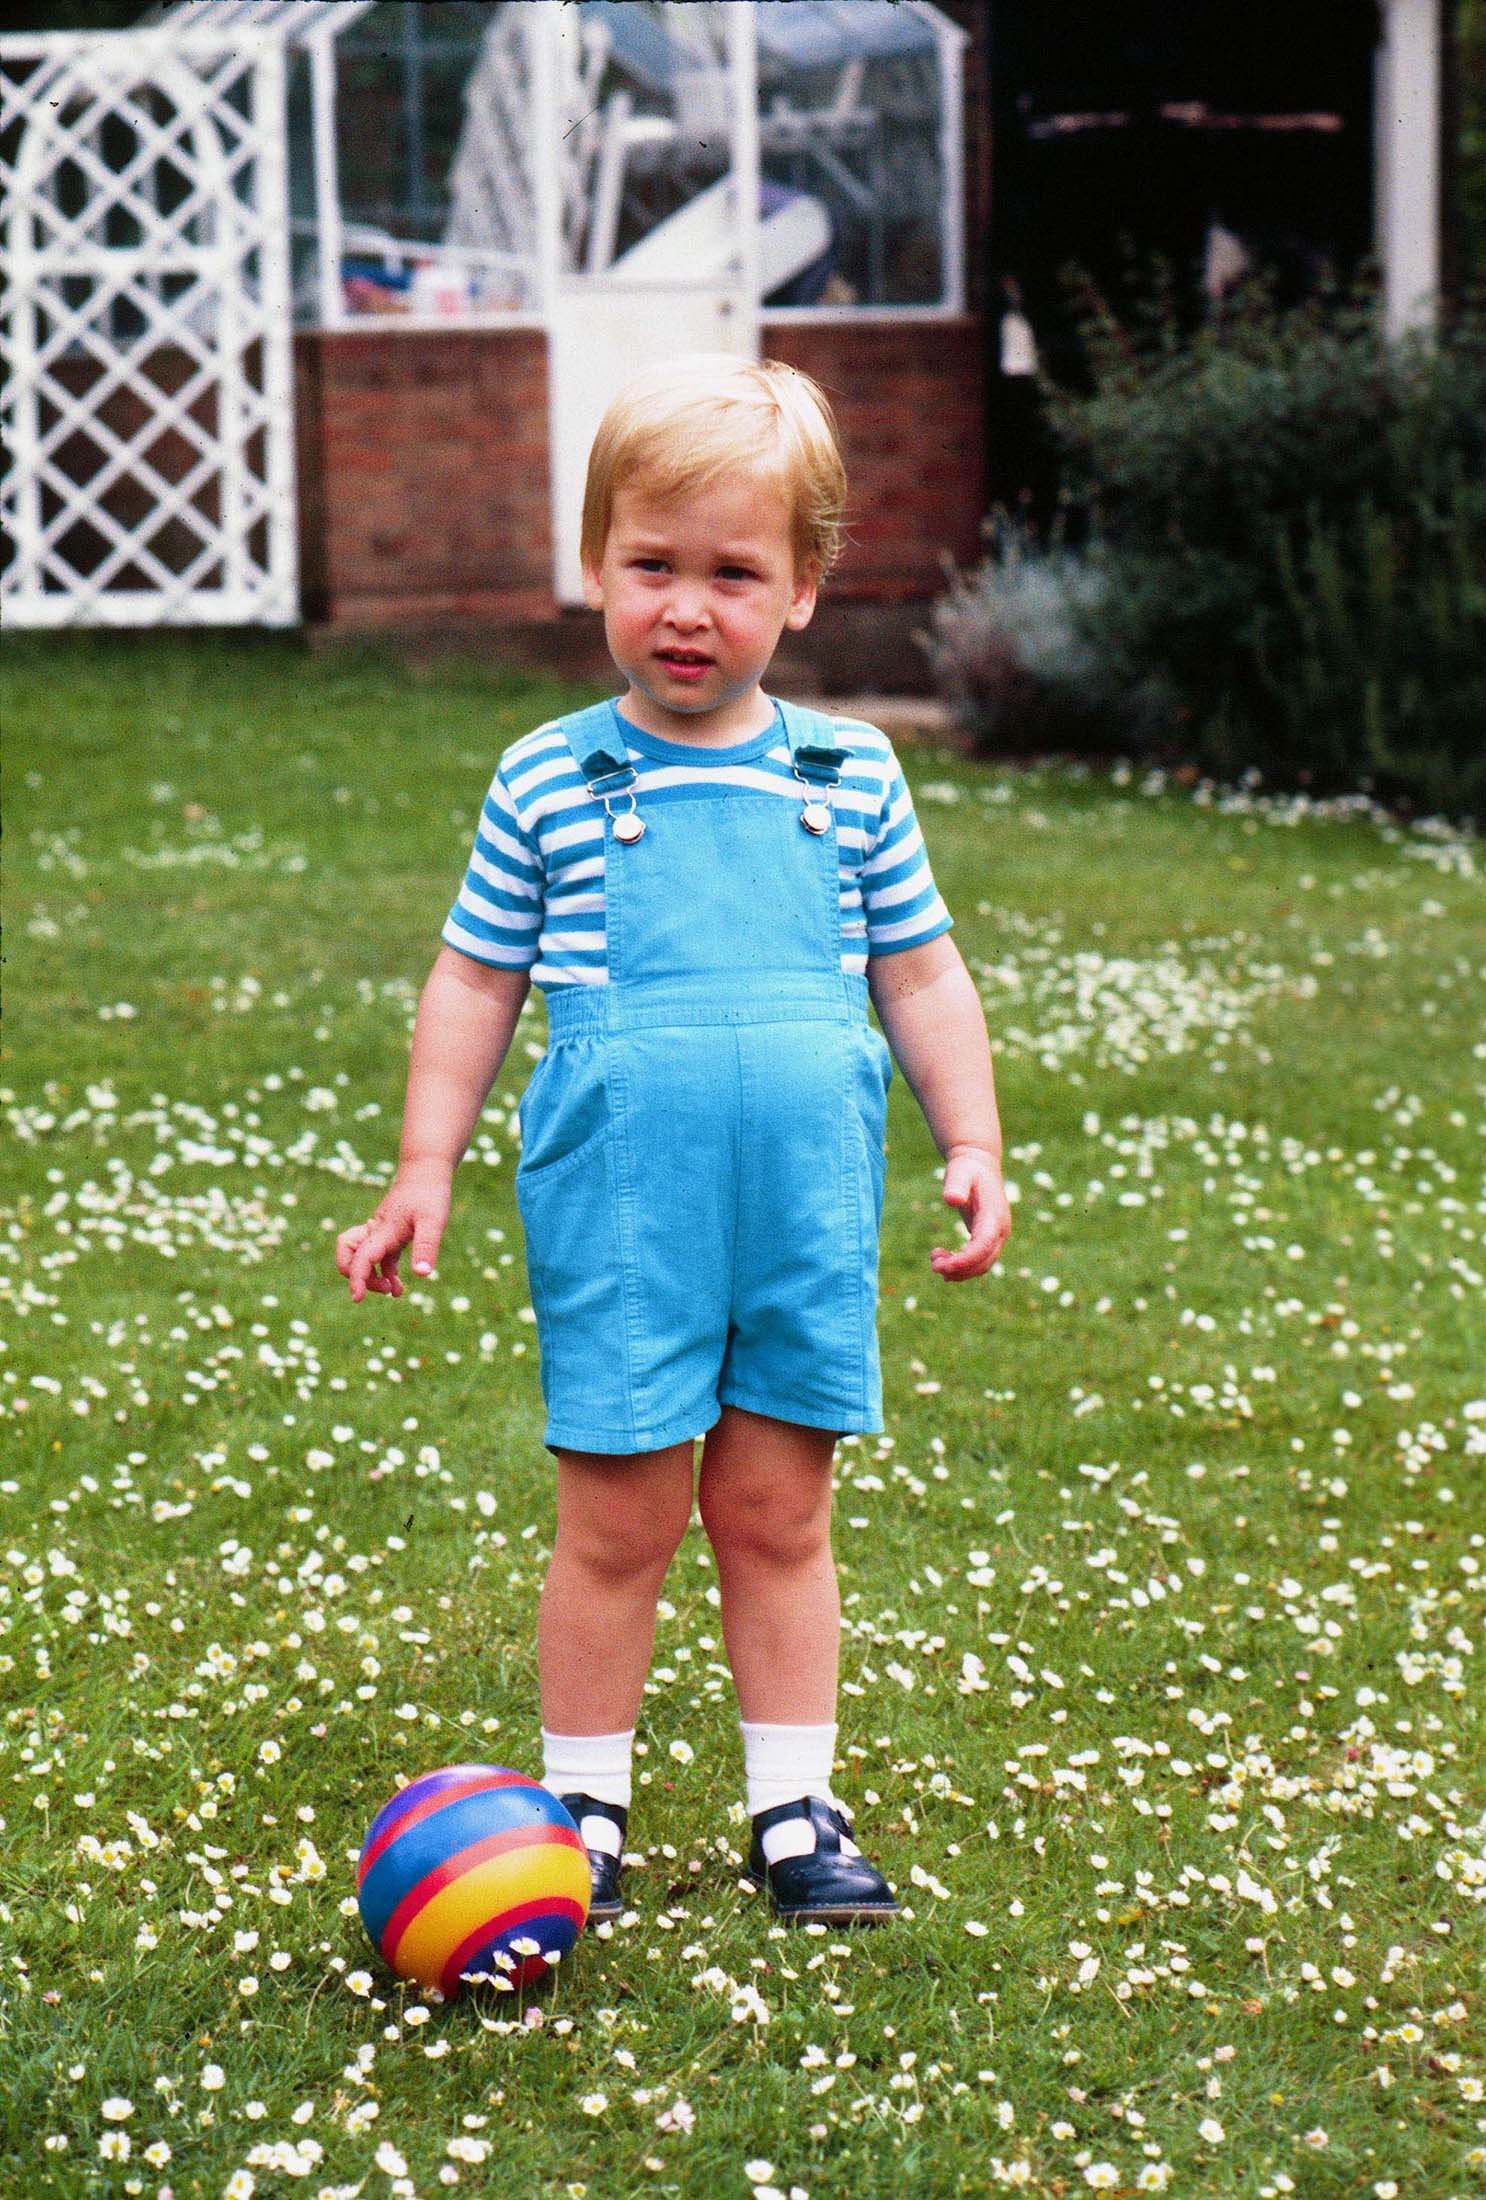 Prince William celebrates his 2nd Birthday by playing football in the gardens of Kensington Palace on June 21st, 1984. Prince Charles jokingly nicknamed his son 'wombat' during the photocall. Royals, William, Child, Sport, Casual, Full length ©Anwar Hussein/allaction.co.uk, Image: 105897877, License: Rights-managed, Restrictions: , Model Release: no, Credit line: Profimedia, Press Association